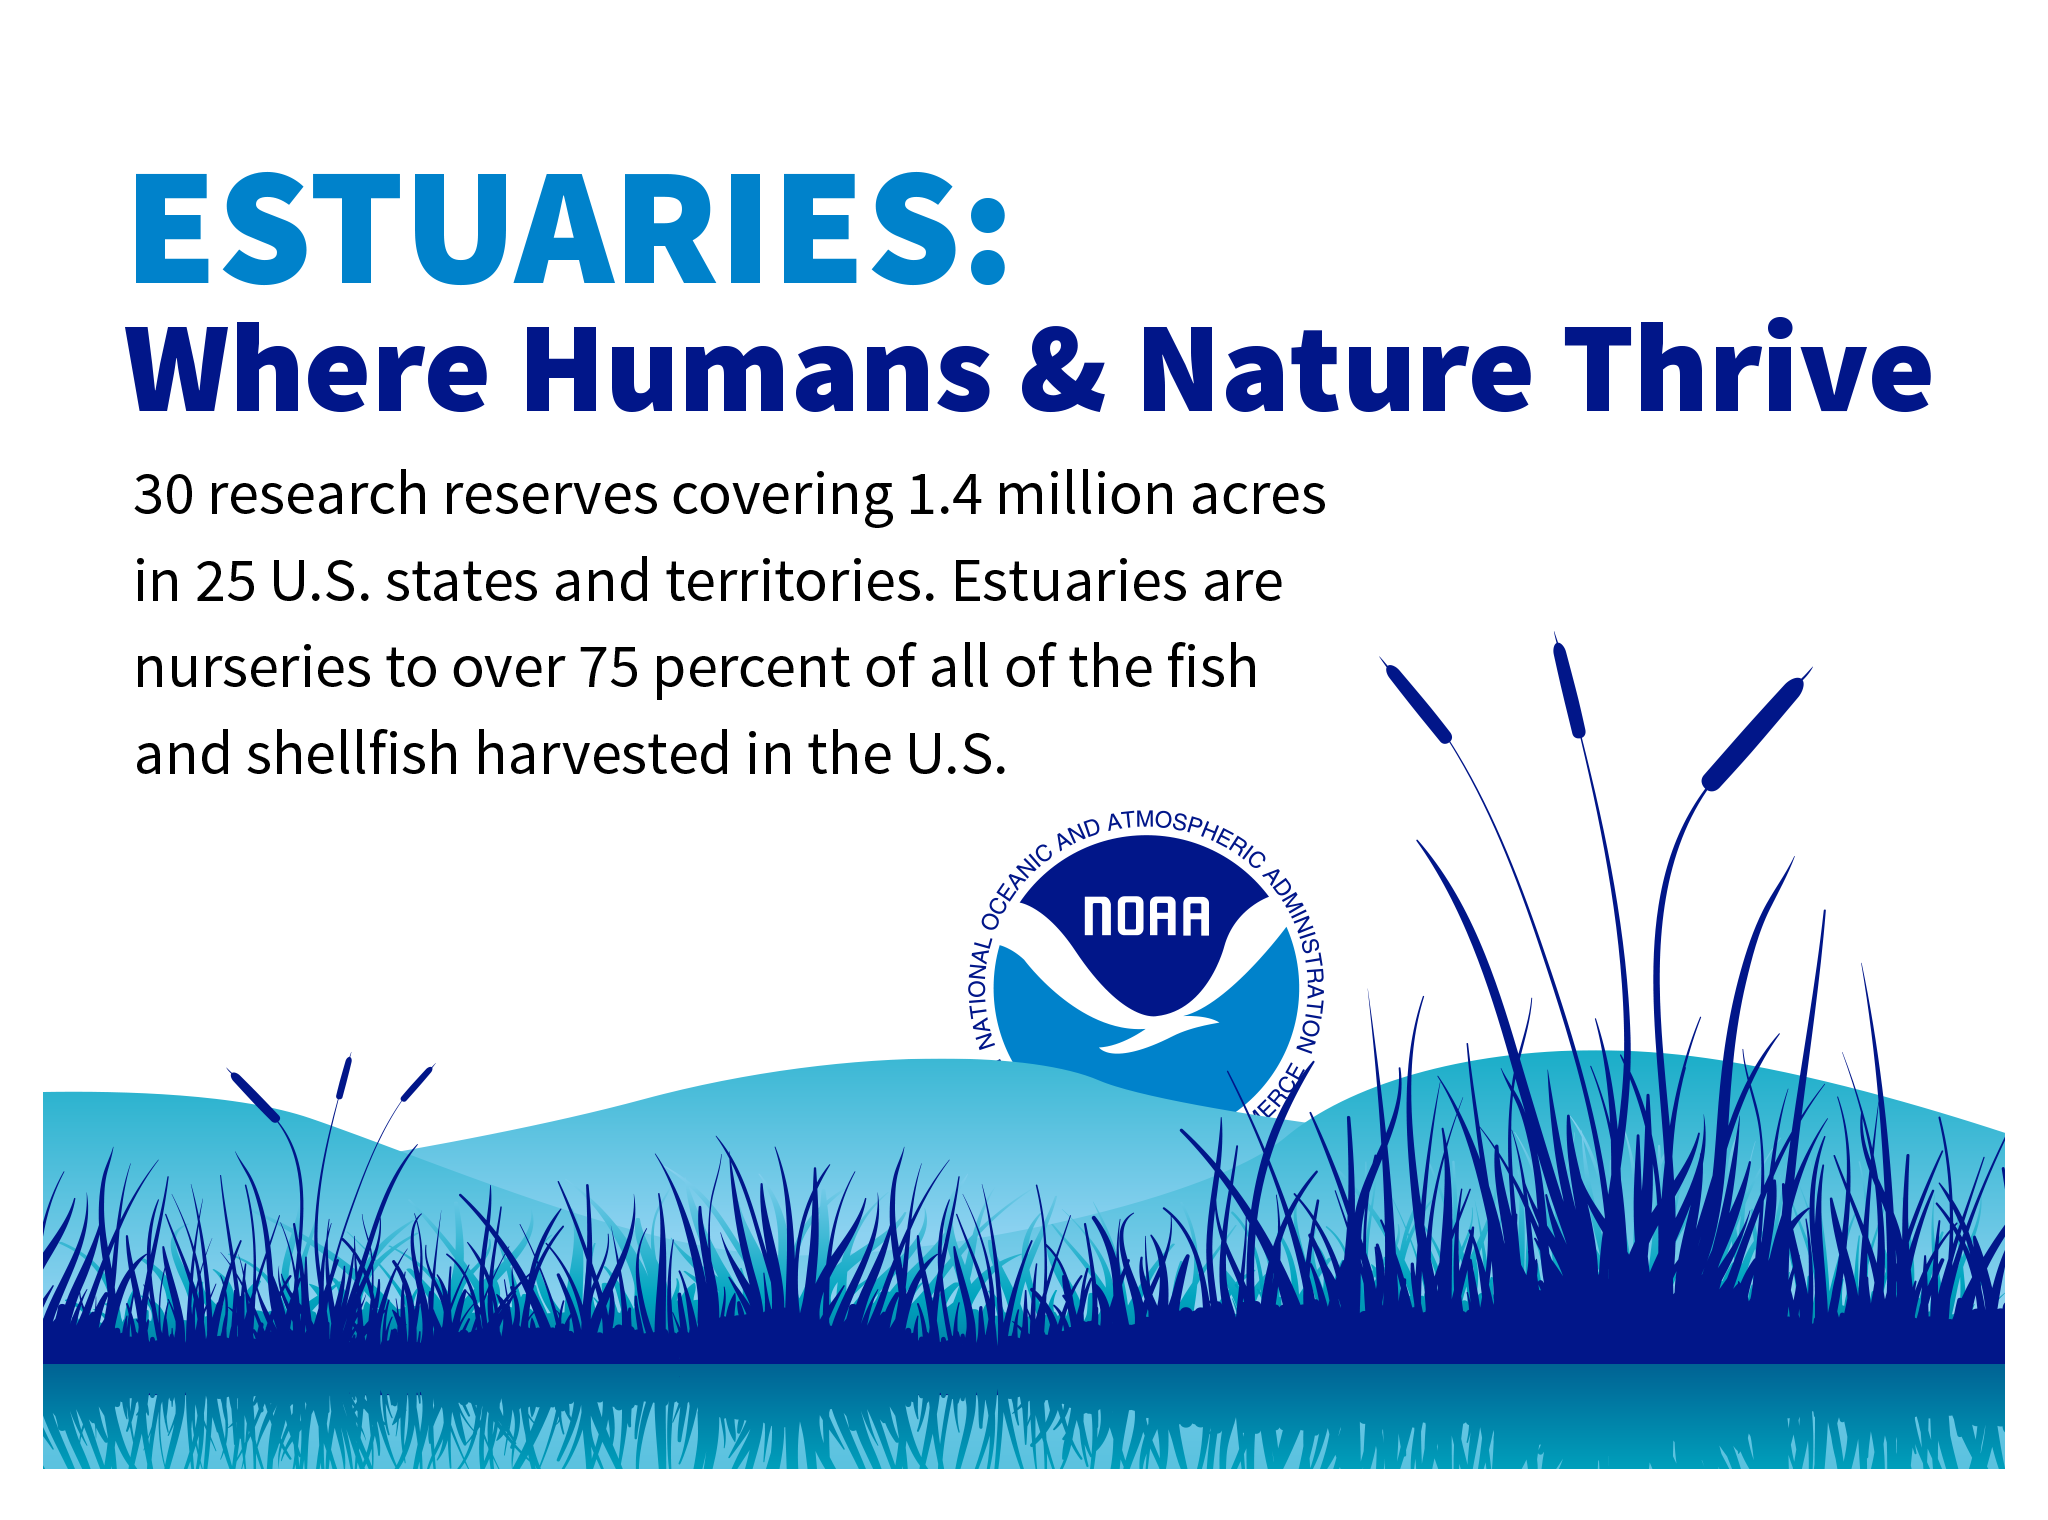 Estuaries: Where Humans & Nature Thrive. 29 research reserves covering 1.3 million acres in 24 U.S. states and territories, contributing over 75 percent of all of the country's fish and shellfish!